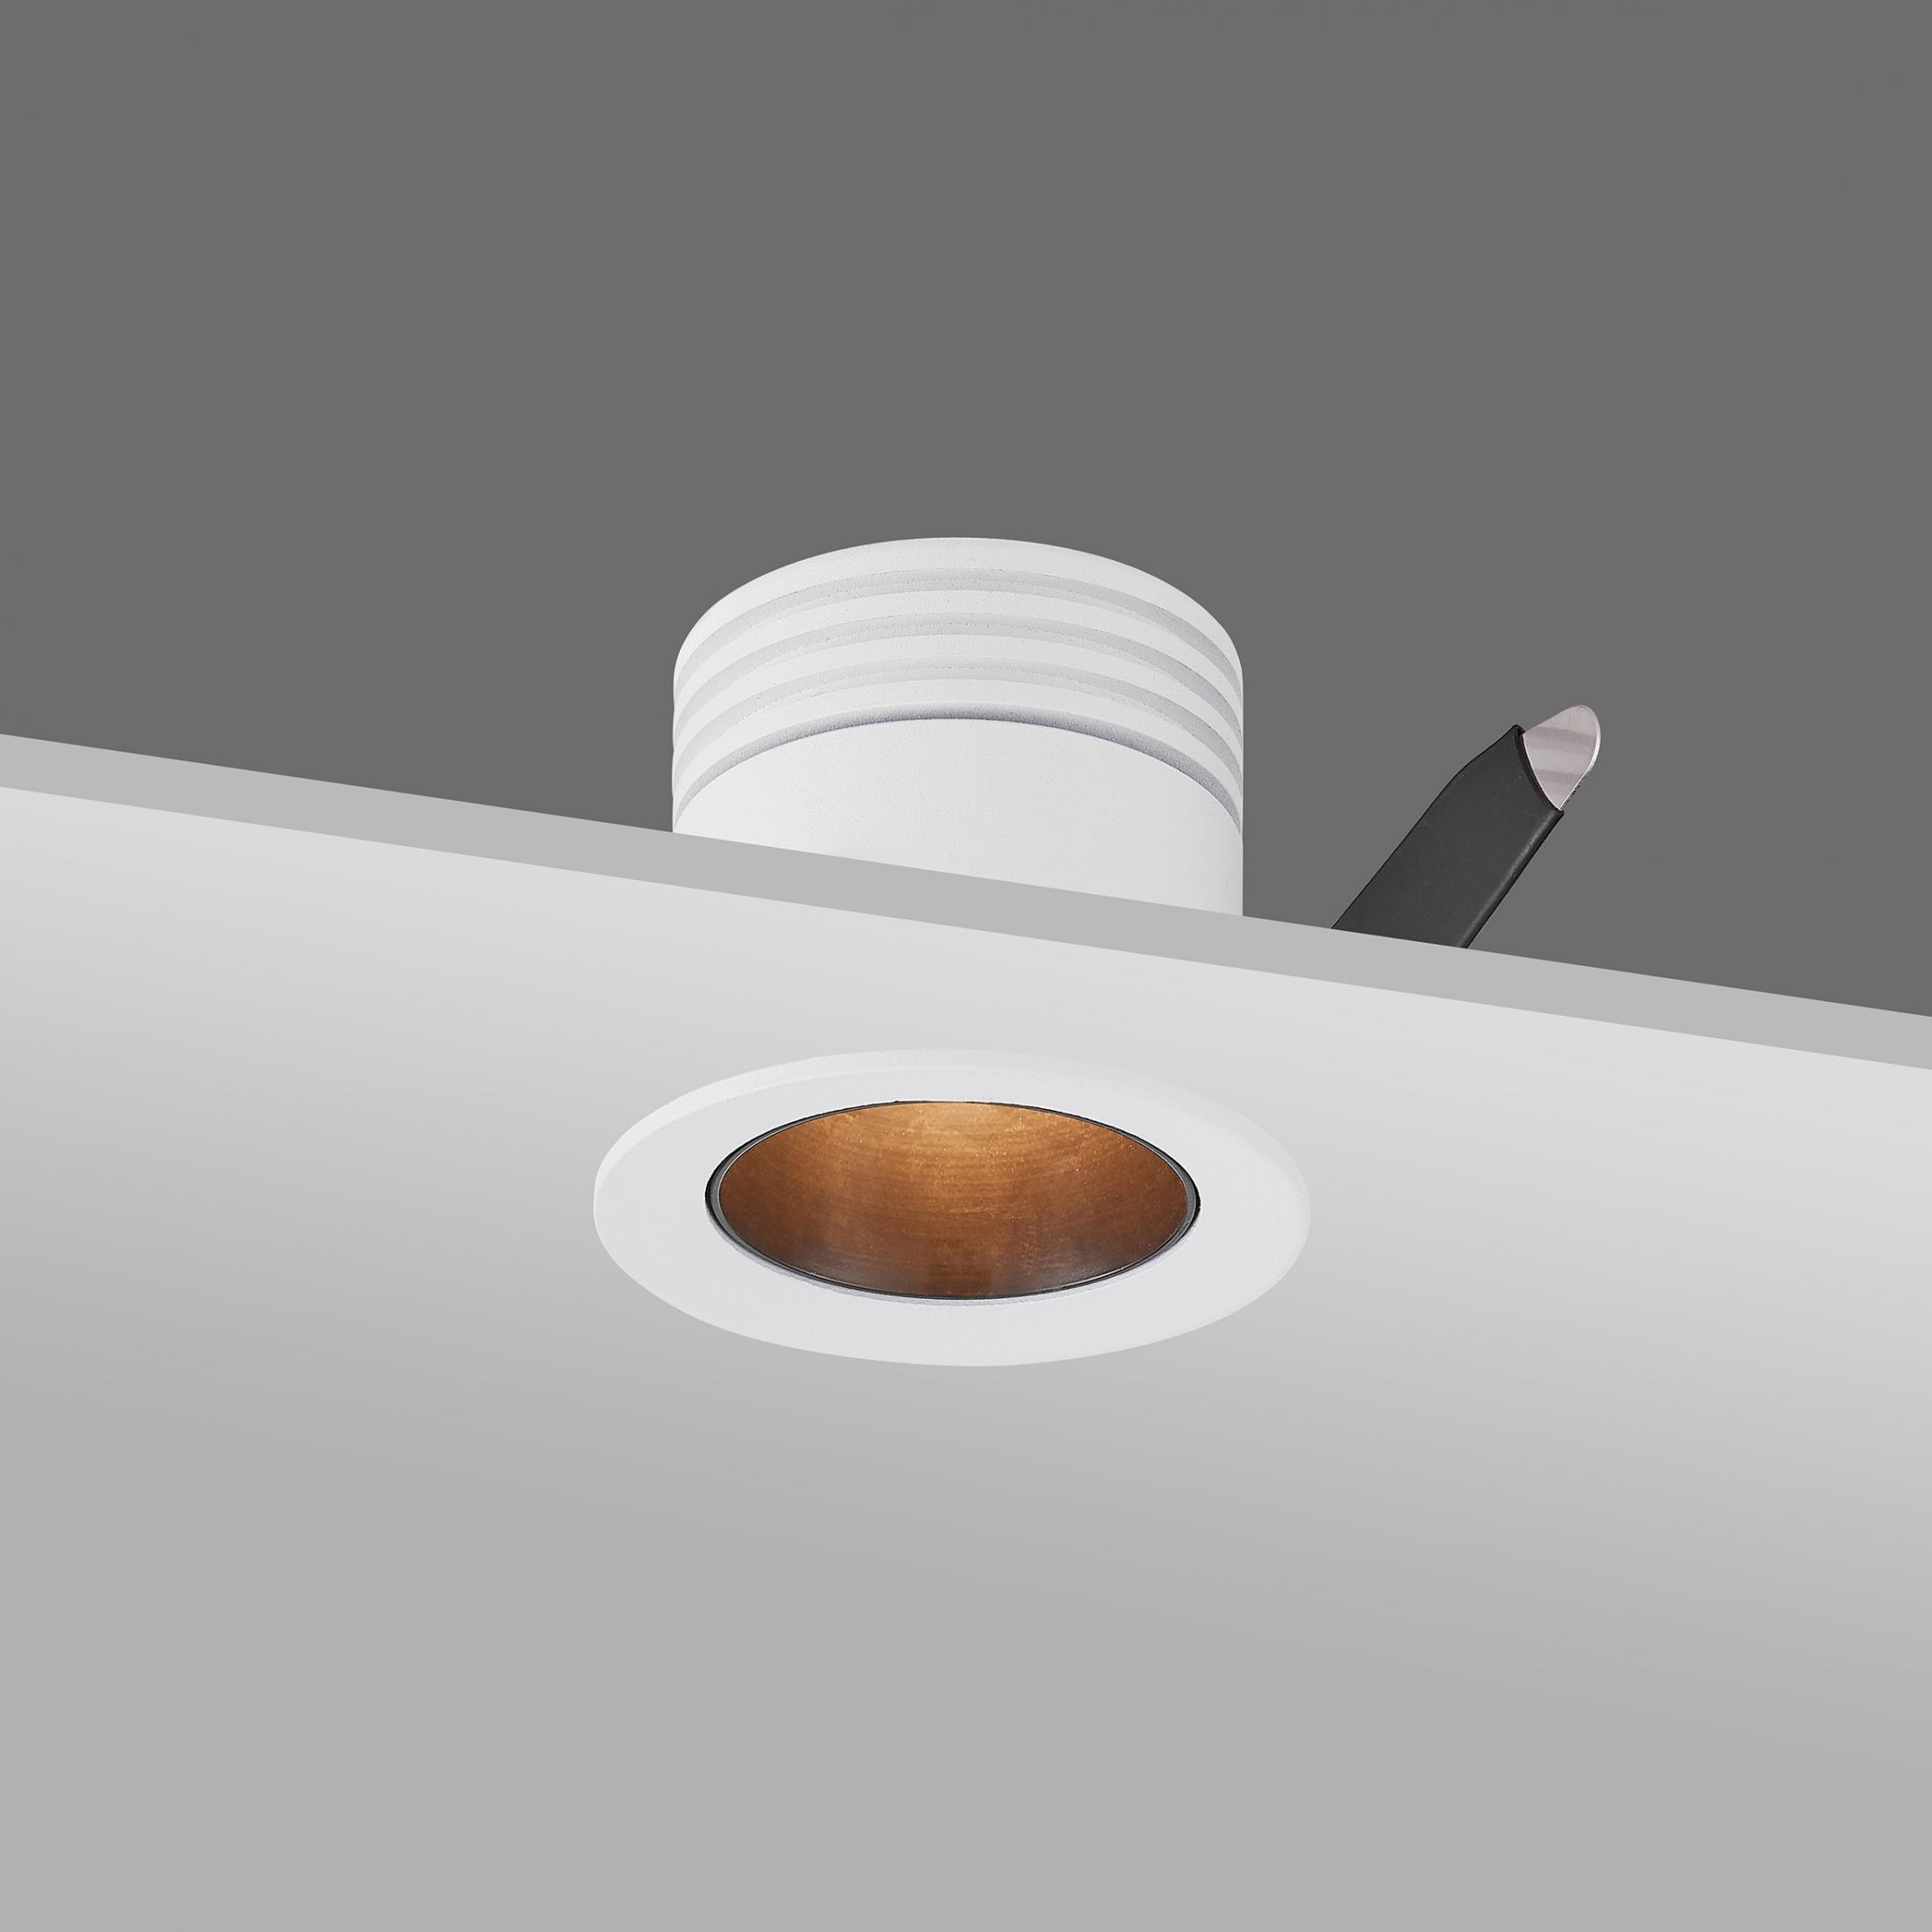 recessed LED light